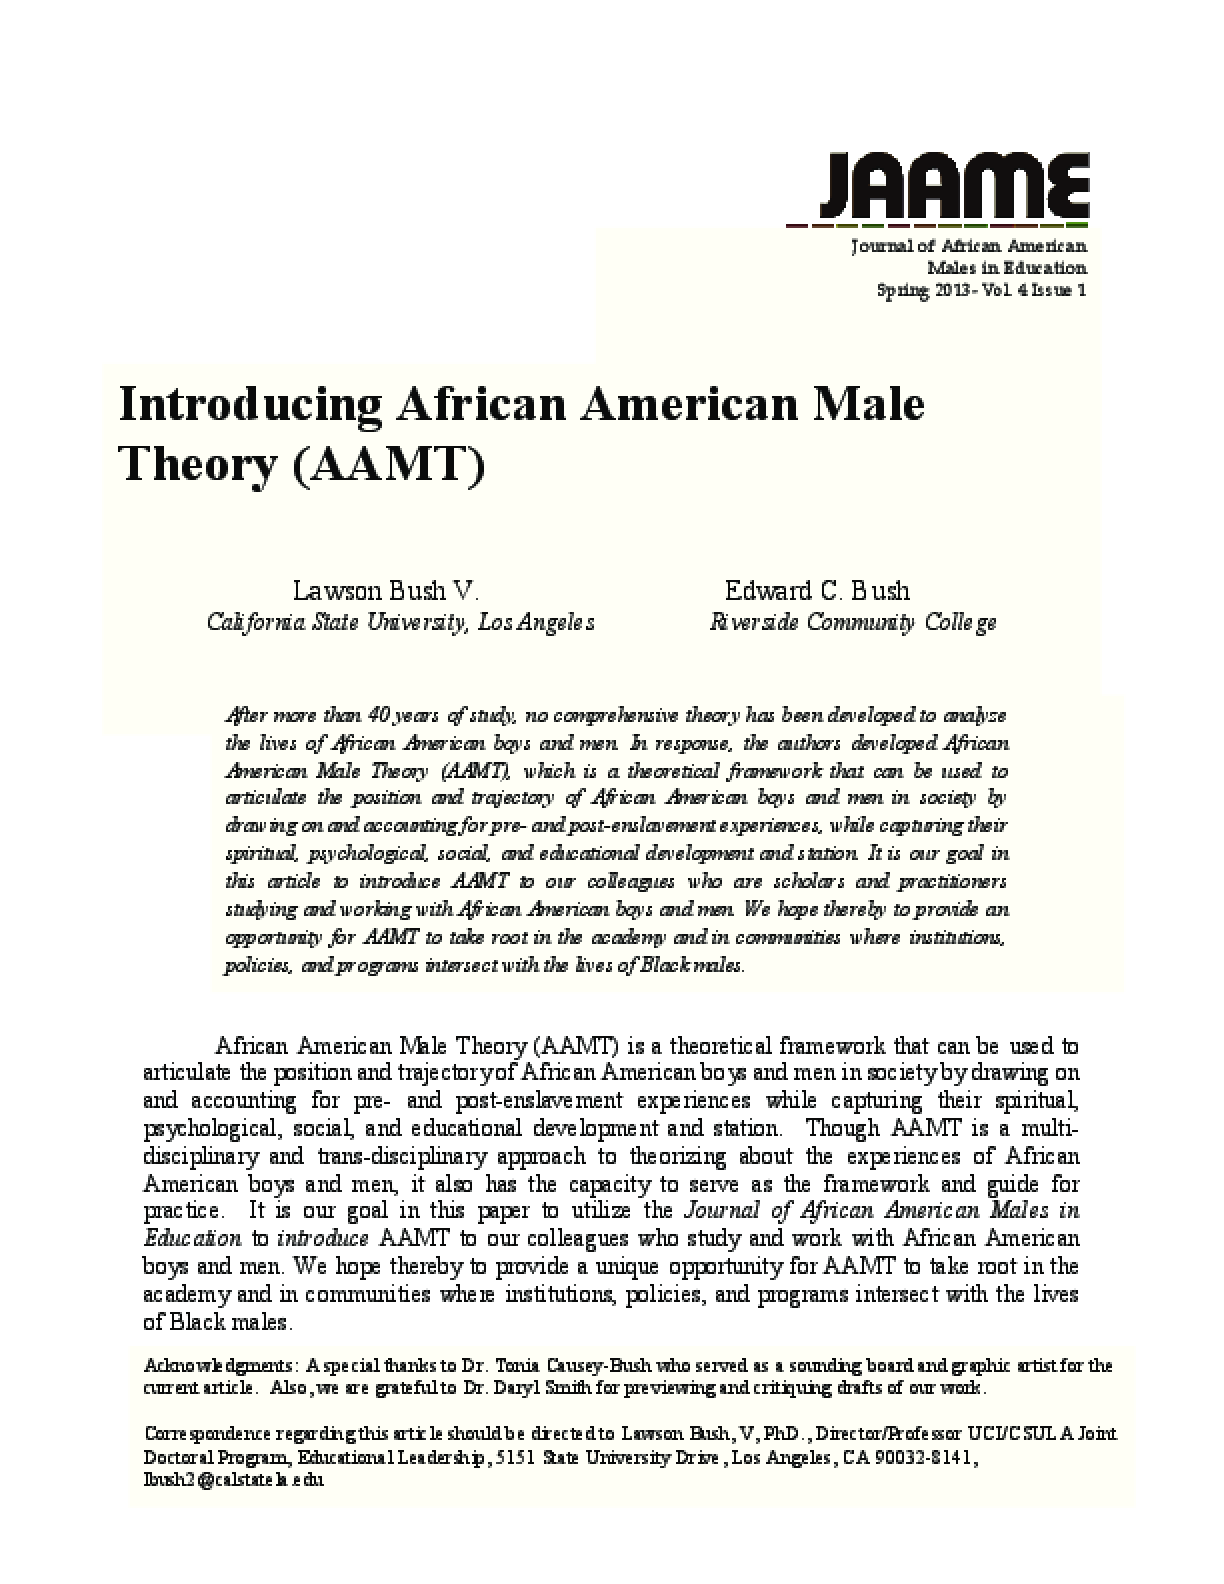 Introducing African American Male Theory